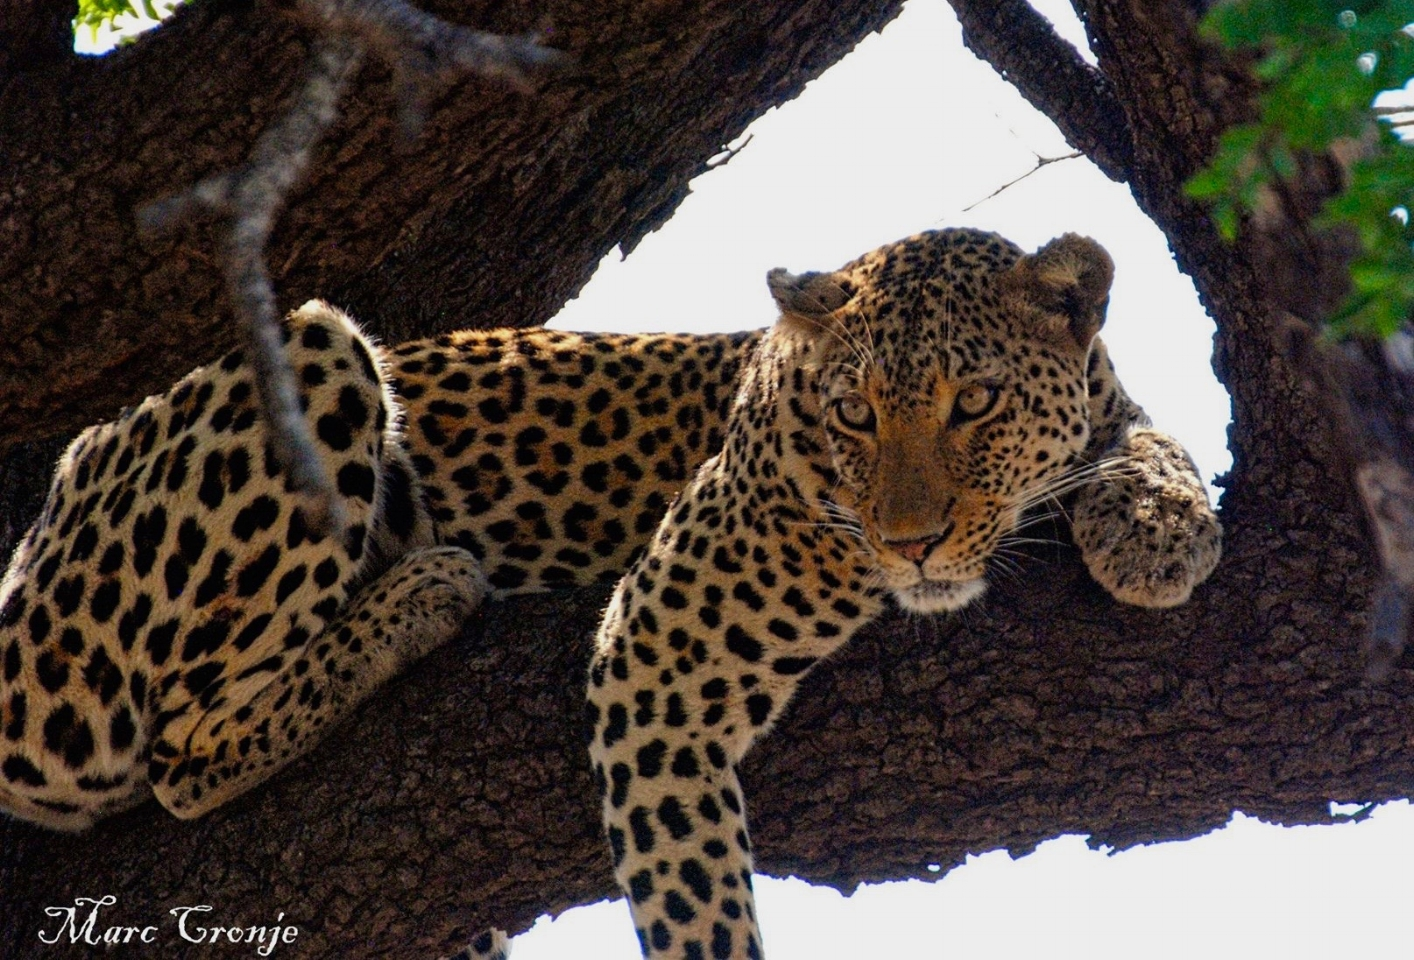 RHE BEST WAY TO PROTECT WILDLIFE IS TO MAKE IT ECONOMICALLY VALUABLE TO THE PEOPLE IN THE COMMUNITY. WILDLIFE TOURISM PAYS. LEOPARD IN KRUGER NATIONAL PARK, SOUTH AFRICA. IMAGE: MARK CRONJE.